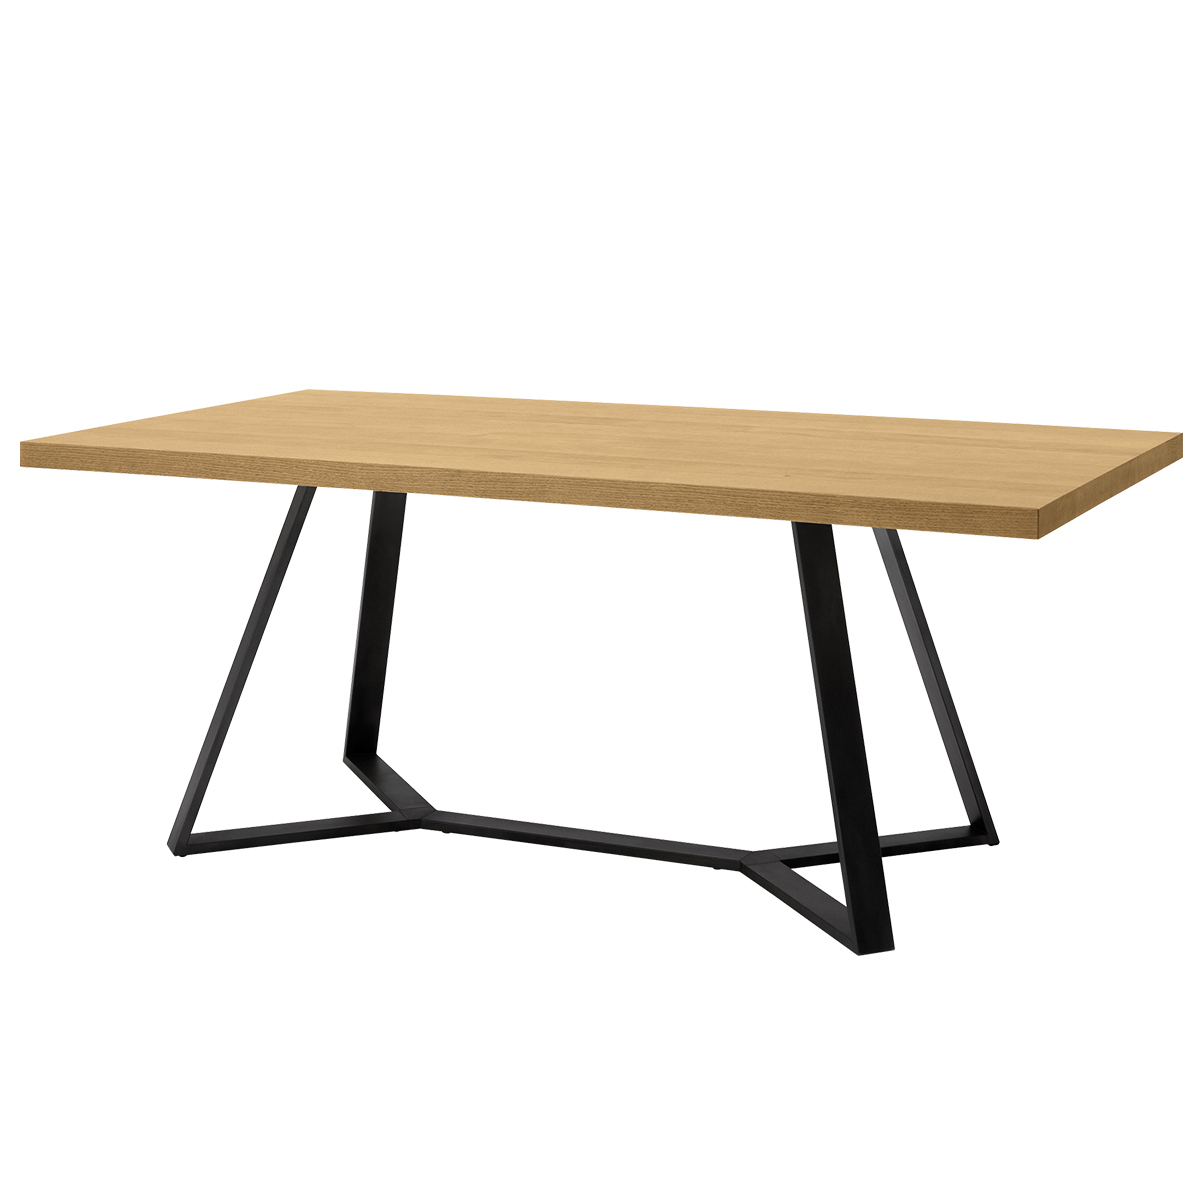 Archie Dining Table by Domitalia